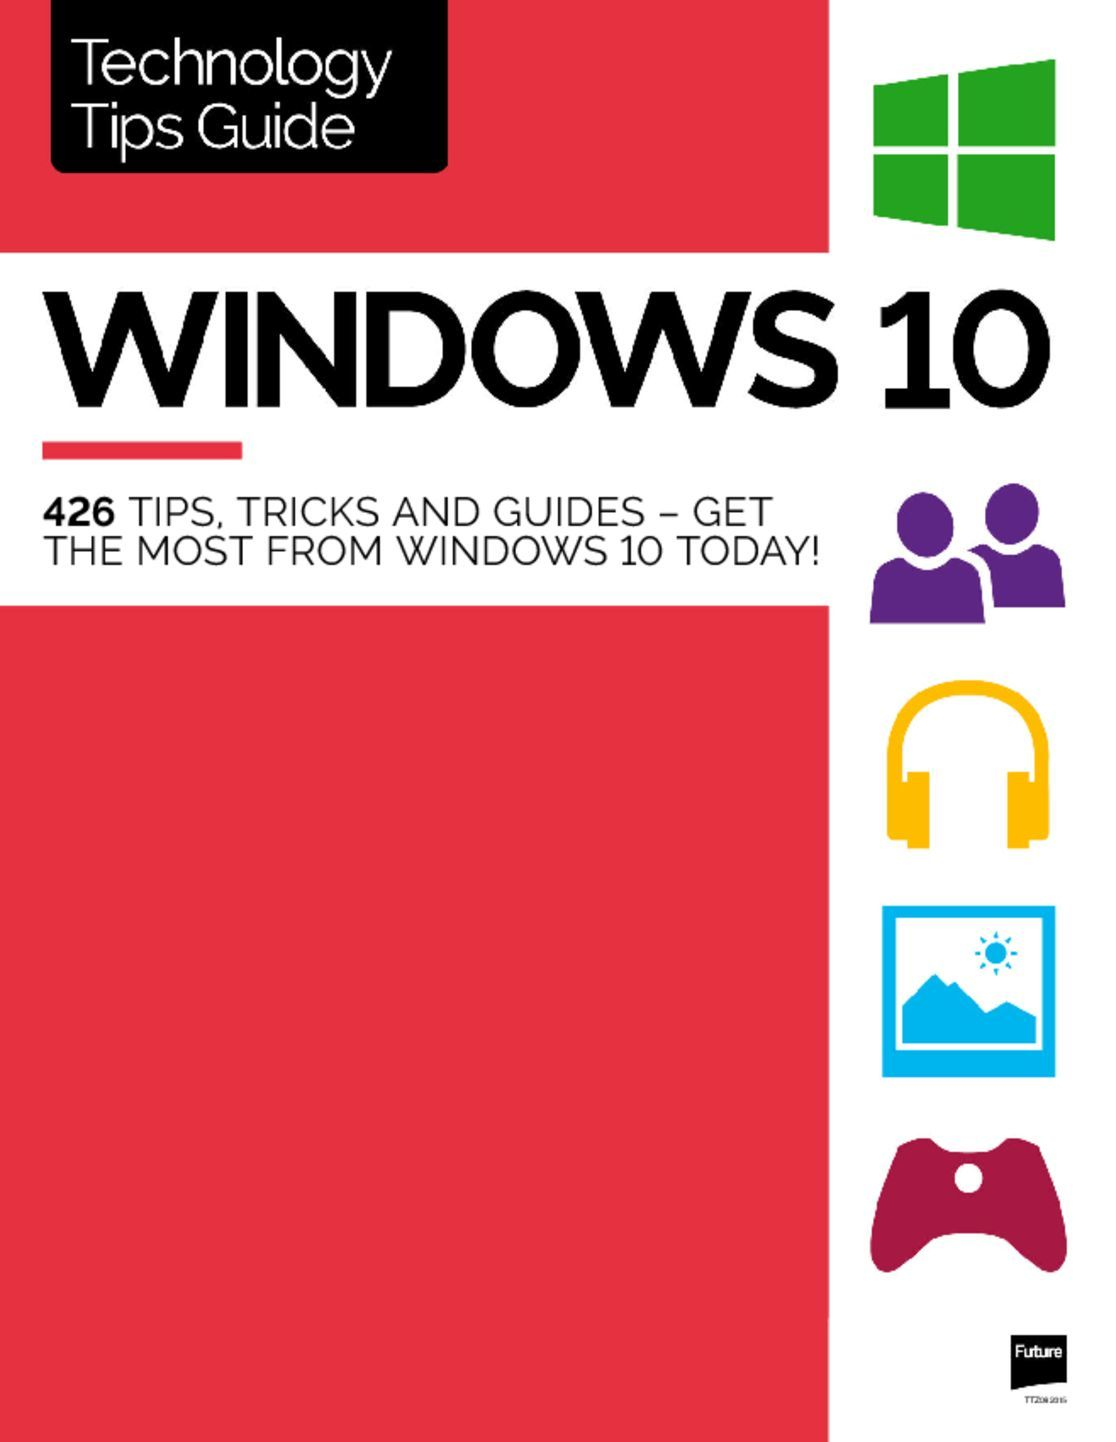 Windows 10 Technology Tips Guide (Digital)